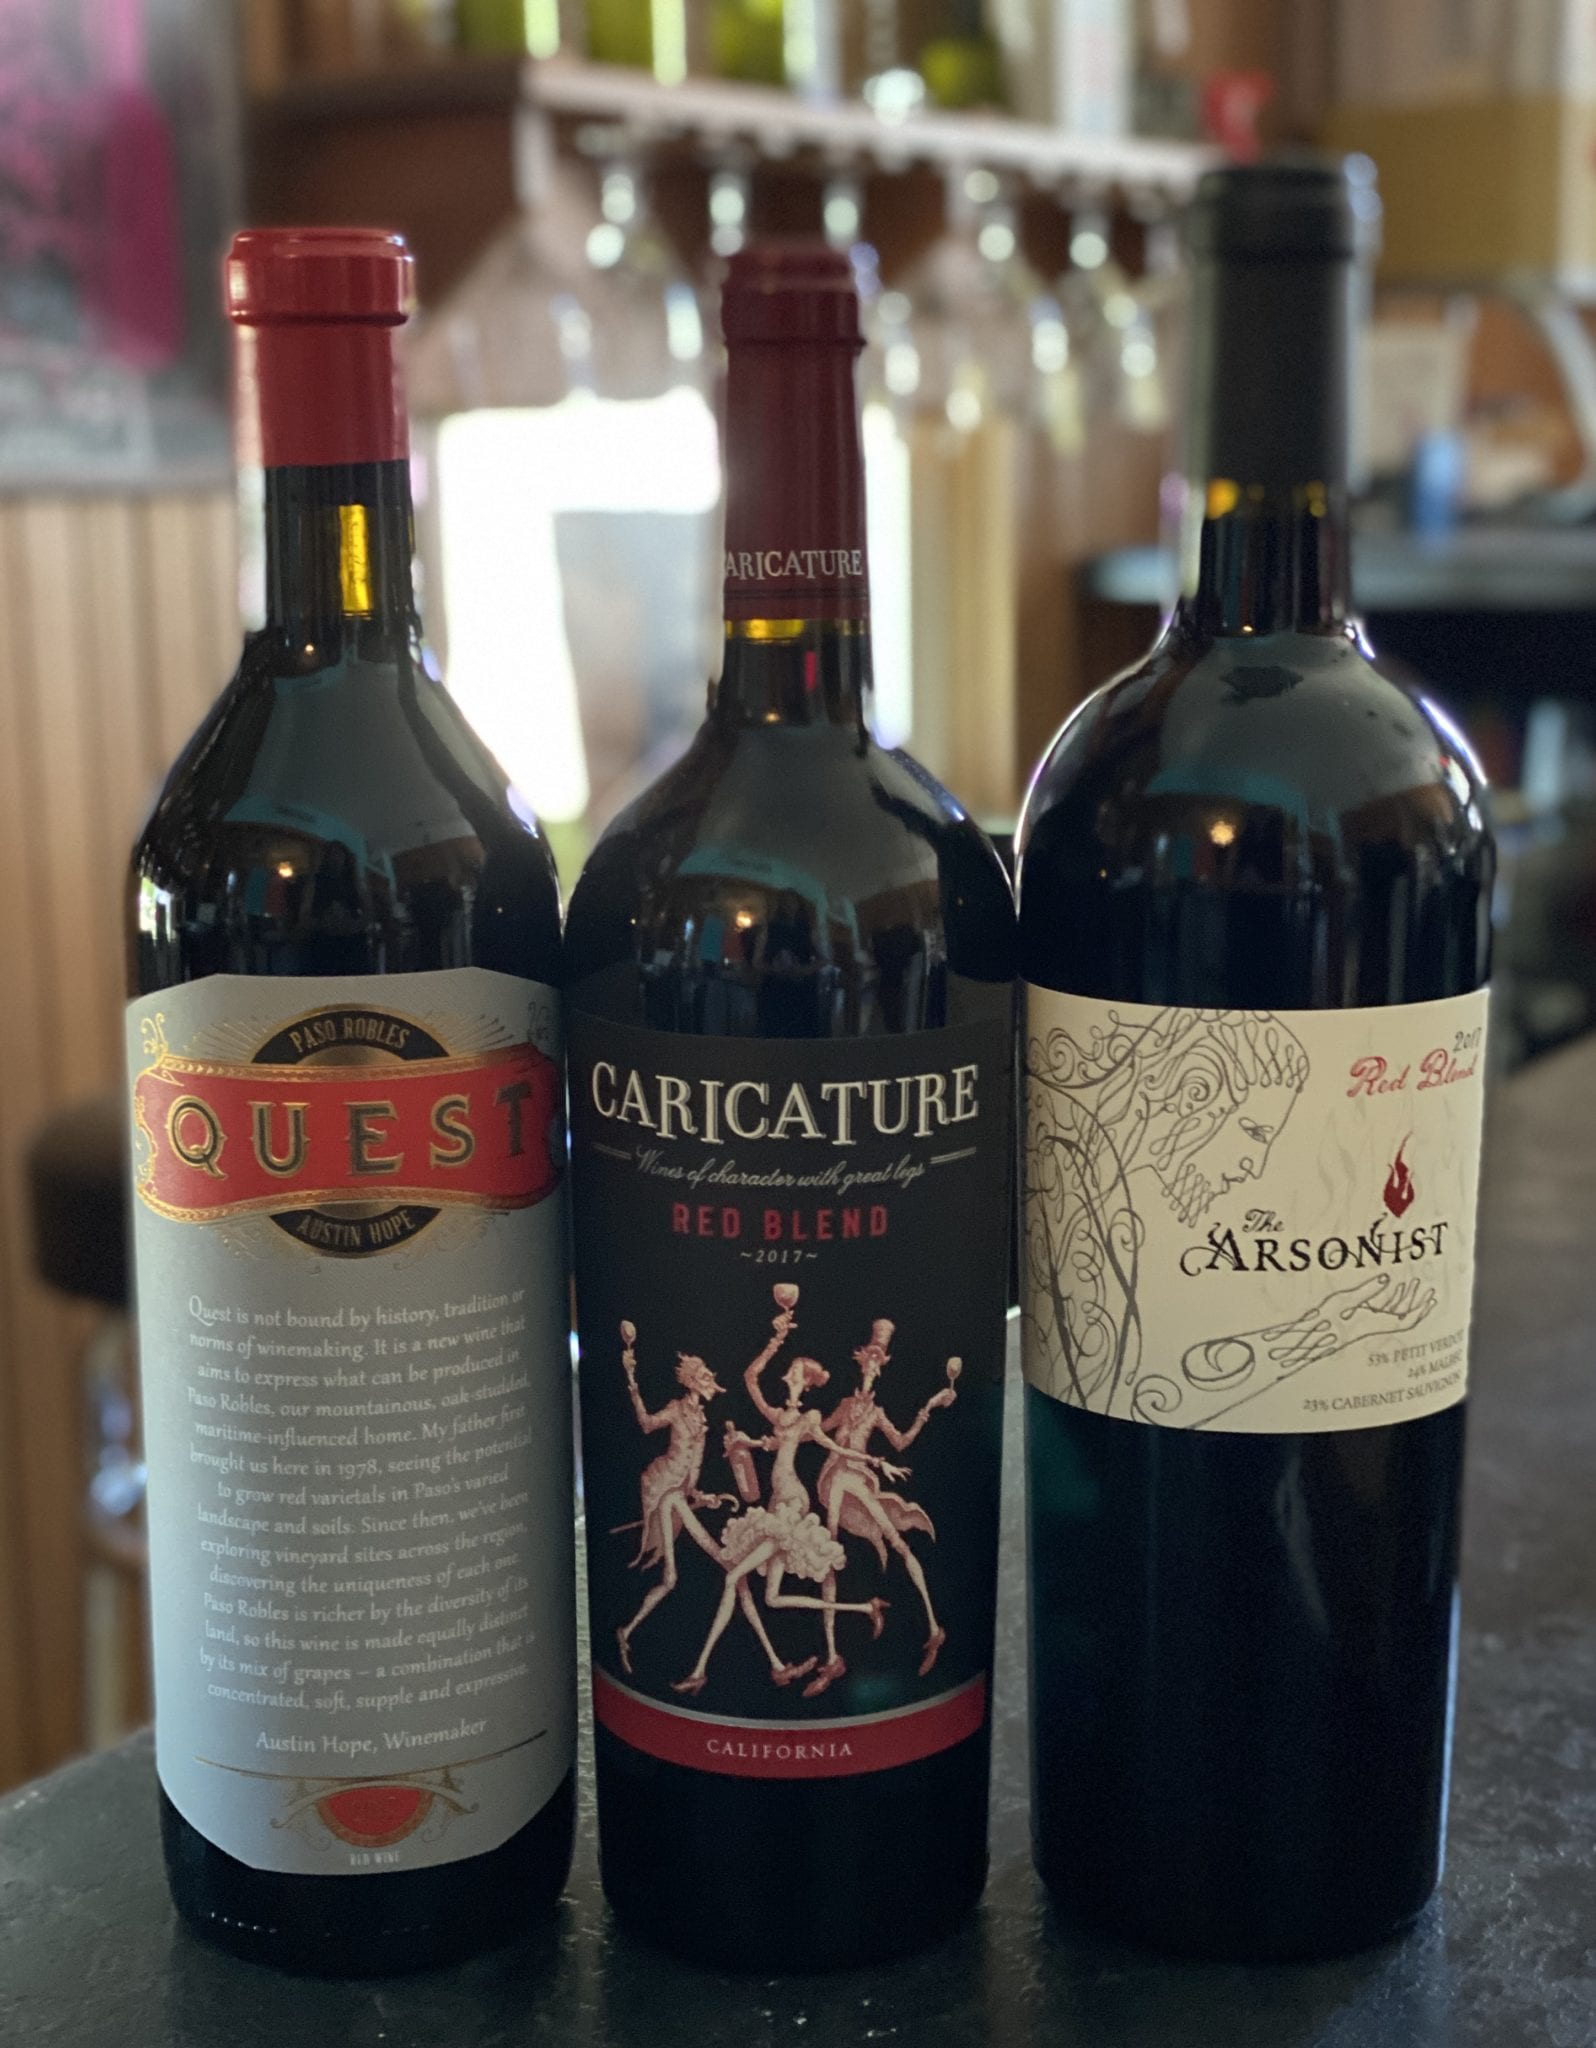 California Red Blend Tasting Trio